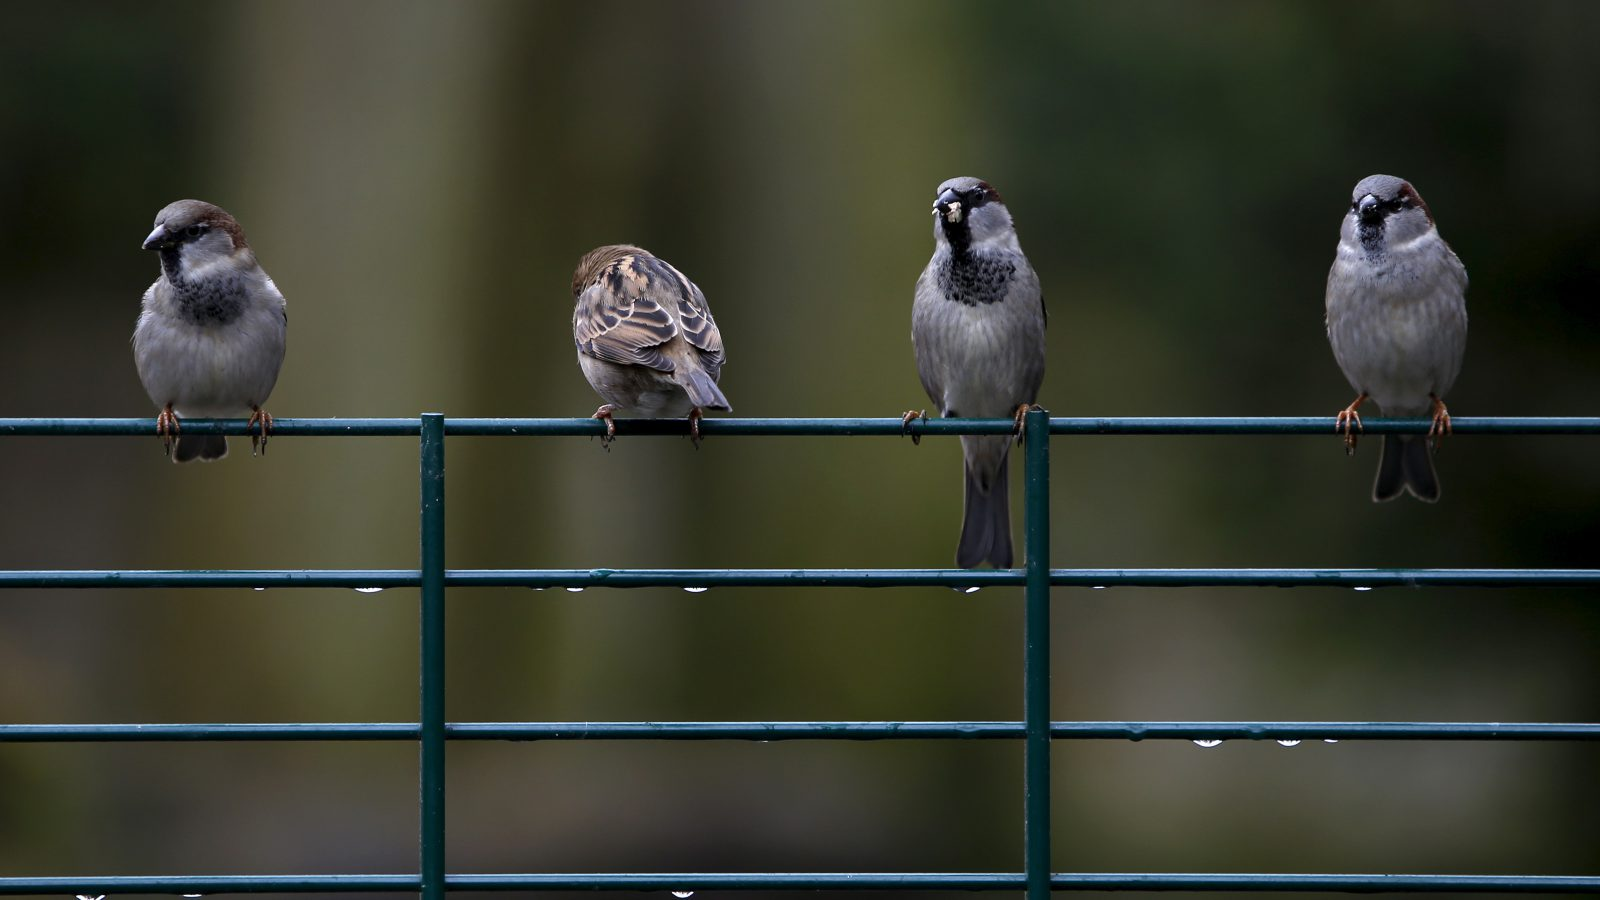 sparrows-sitting-on-fence